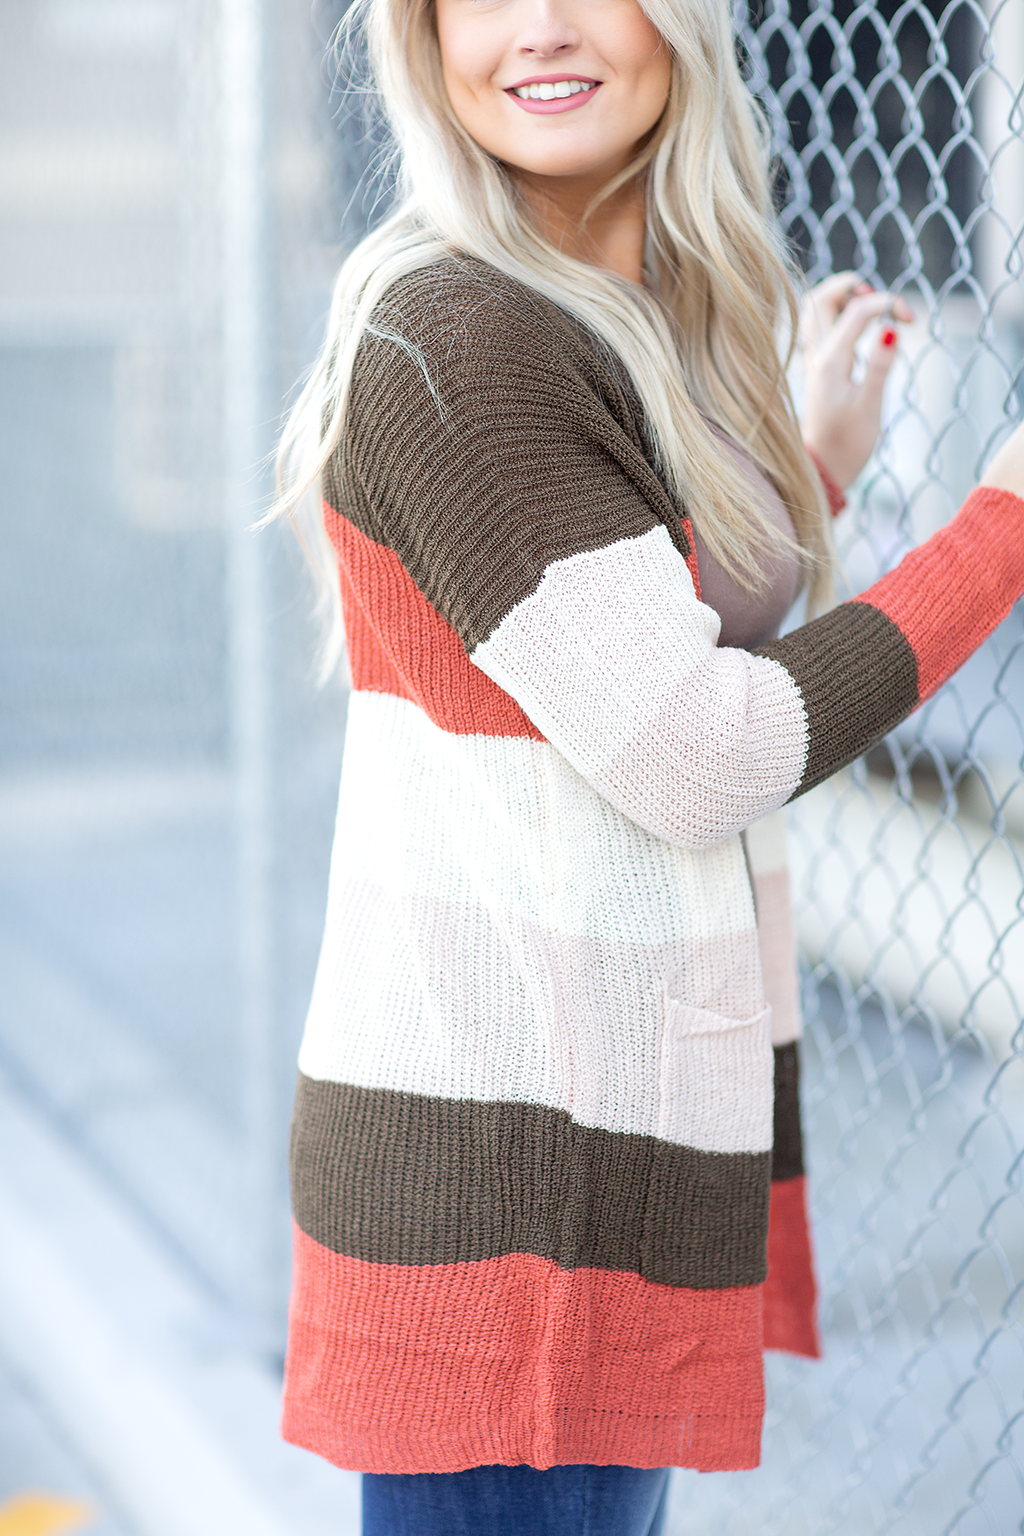 Let Me Know Multi Colored Cardigan in Rust, Olive and Cream